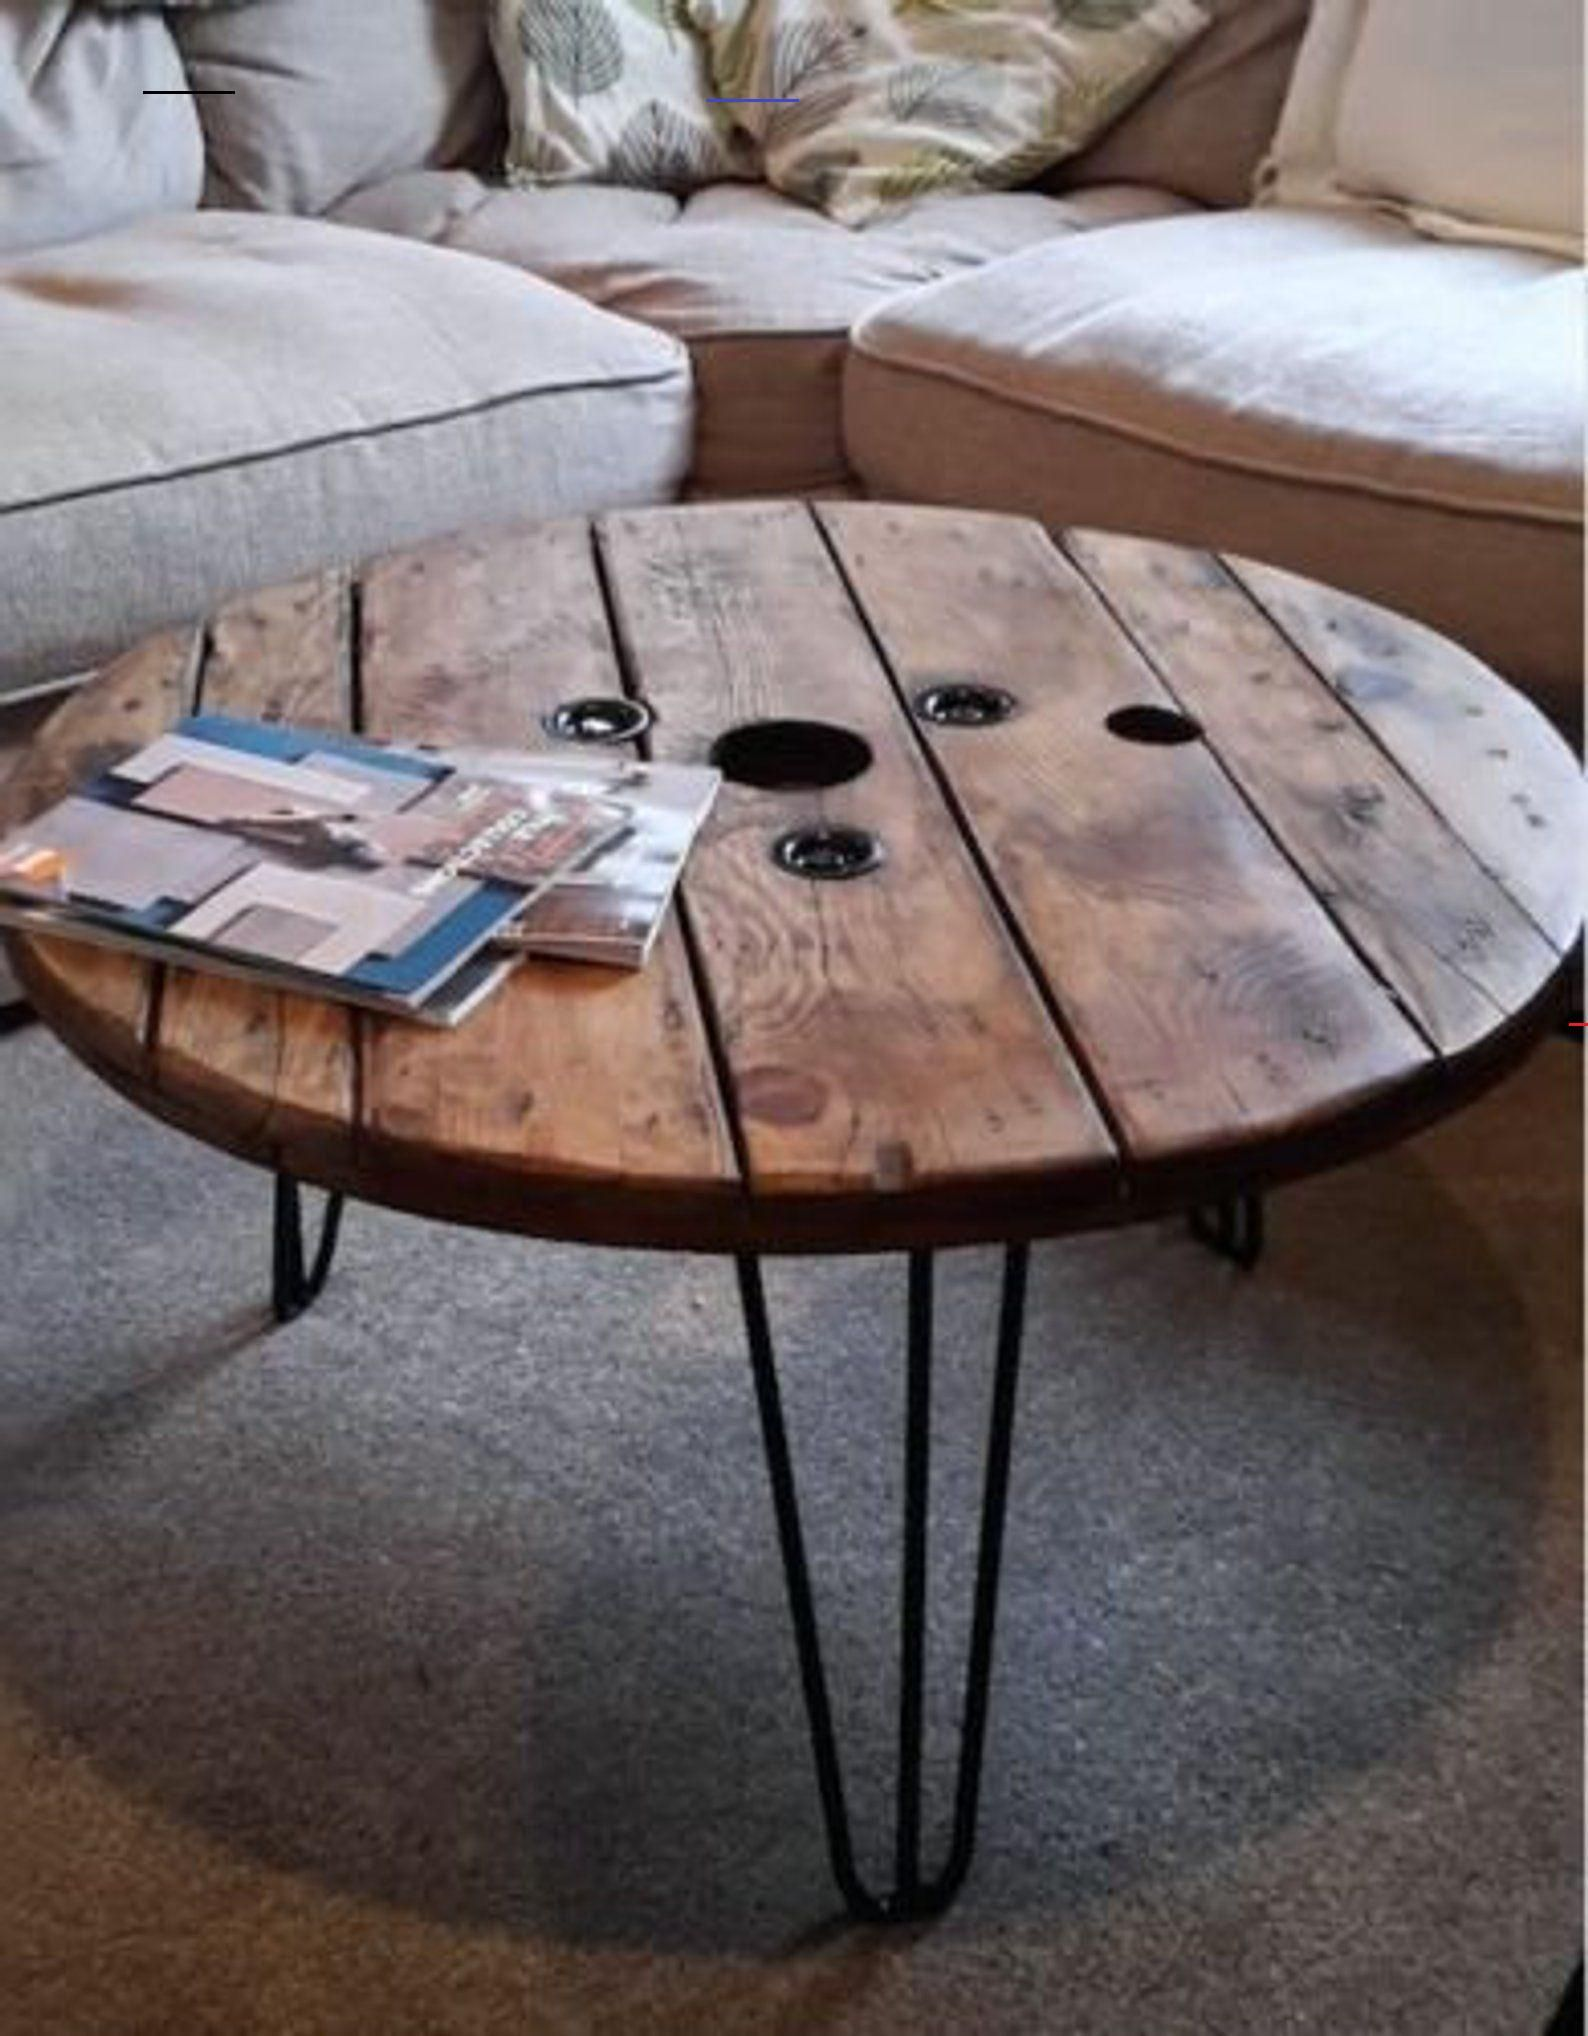 Wire Spoll Coffee Table End Table Bedside Table Rustic Table Round Table Dining Table Outdoor Furniture S Spool Furniture Cable Drum Table Rustic Coffee Tables [ 2036 x 1588 Pixel ]